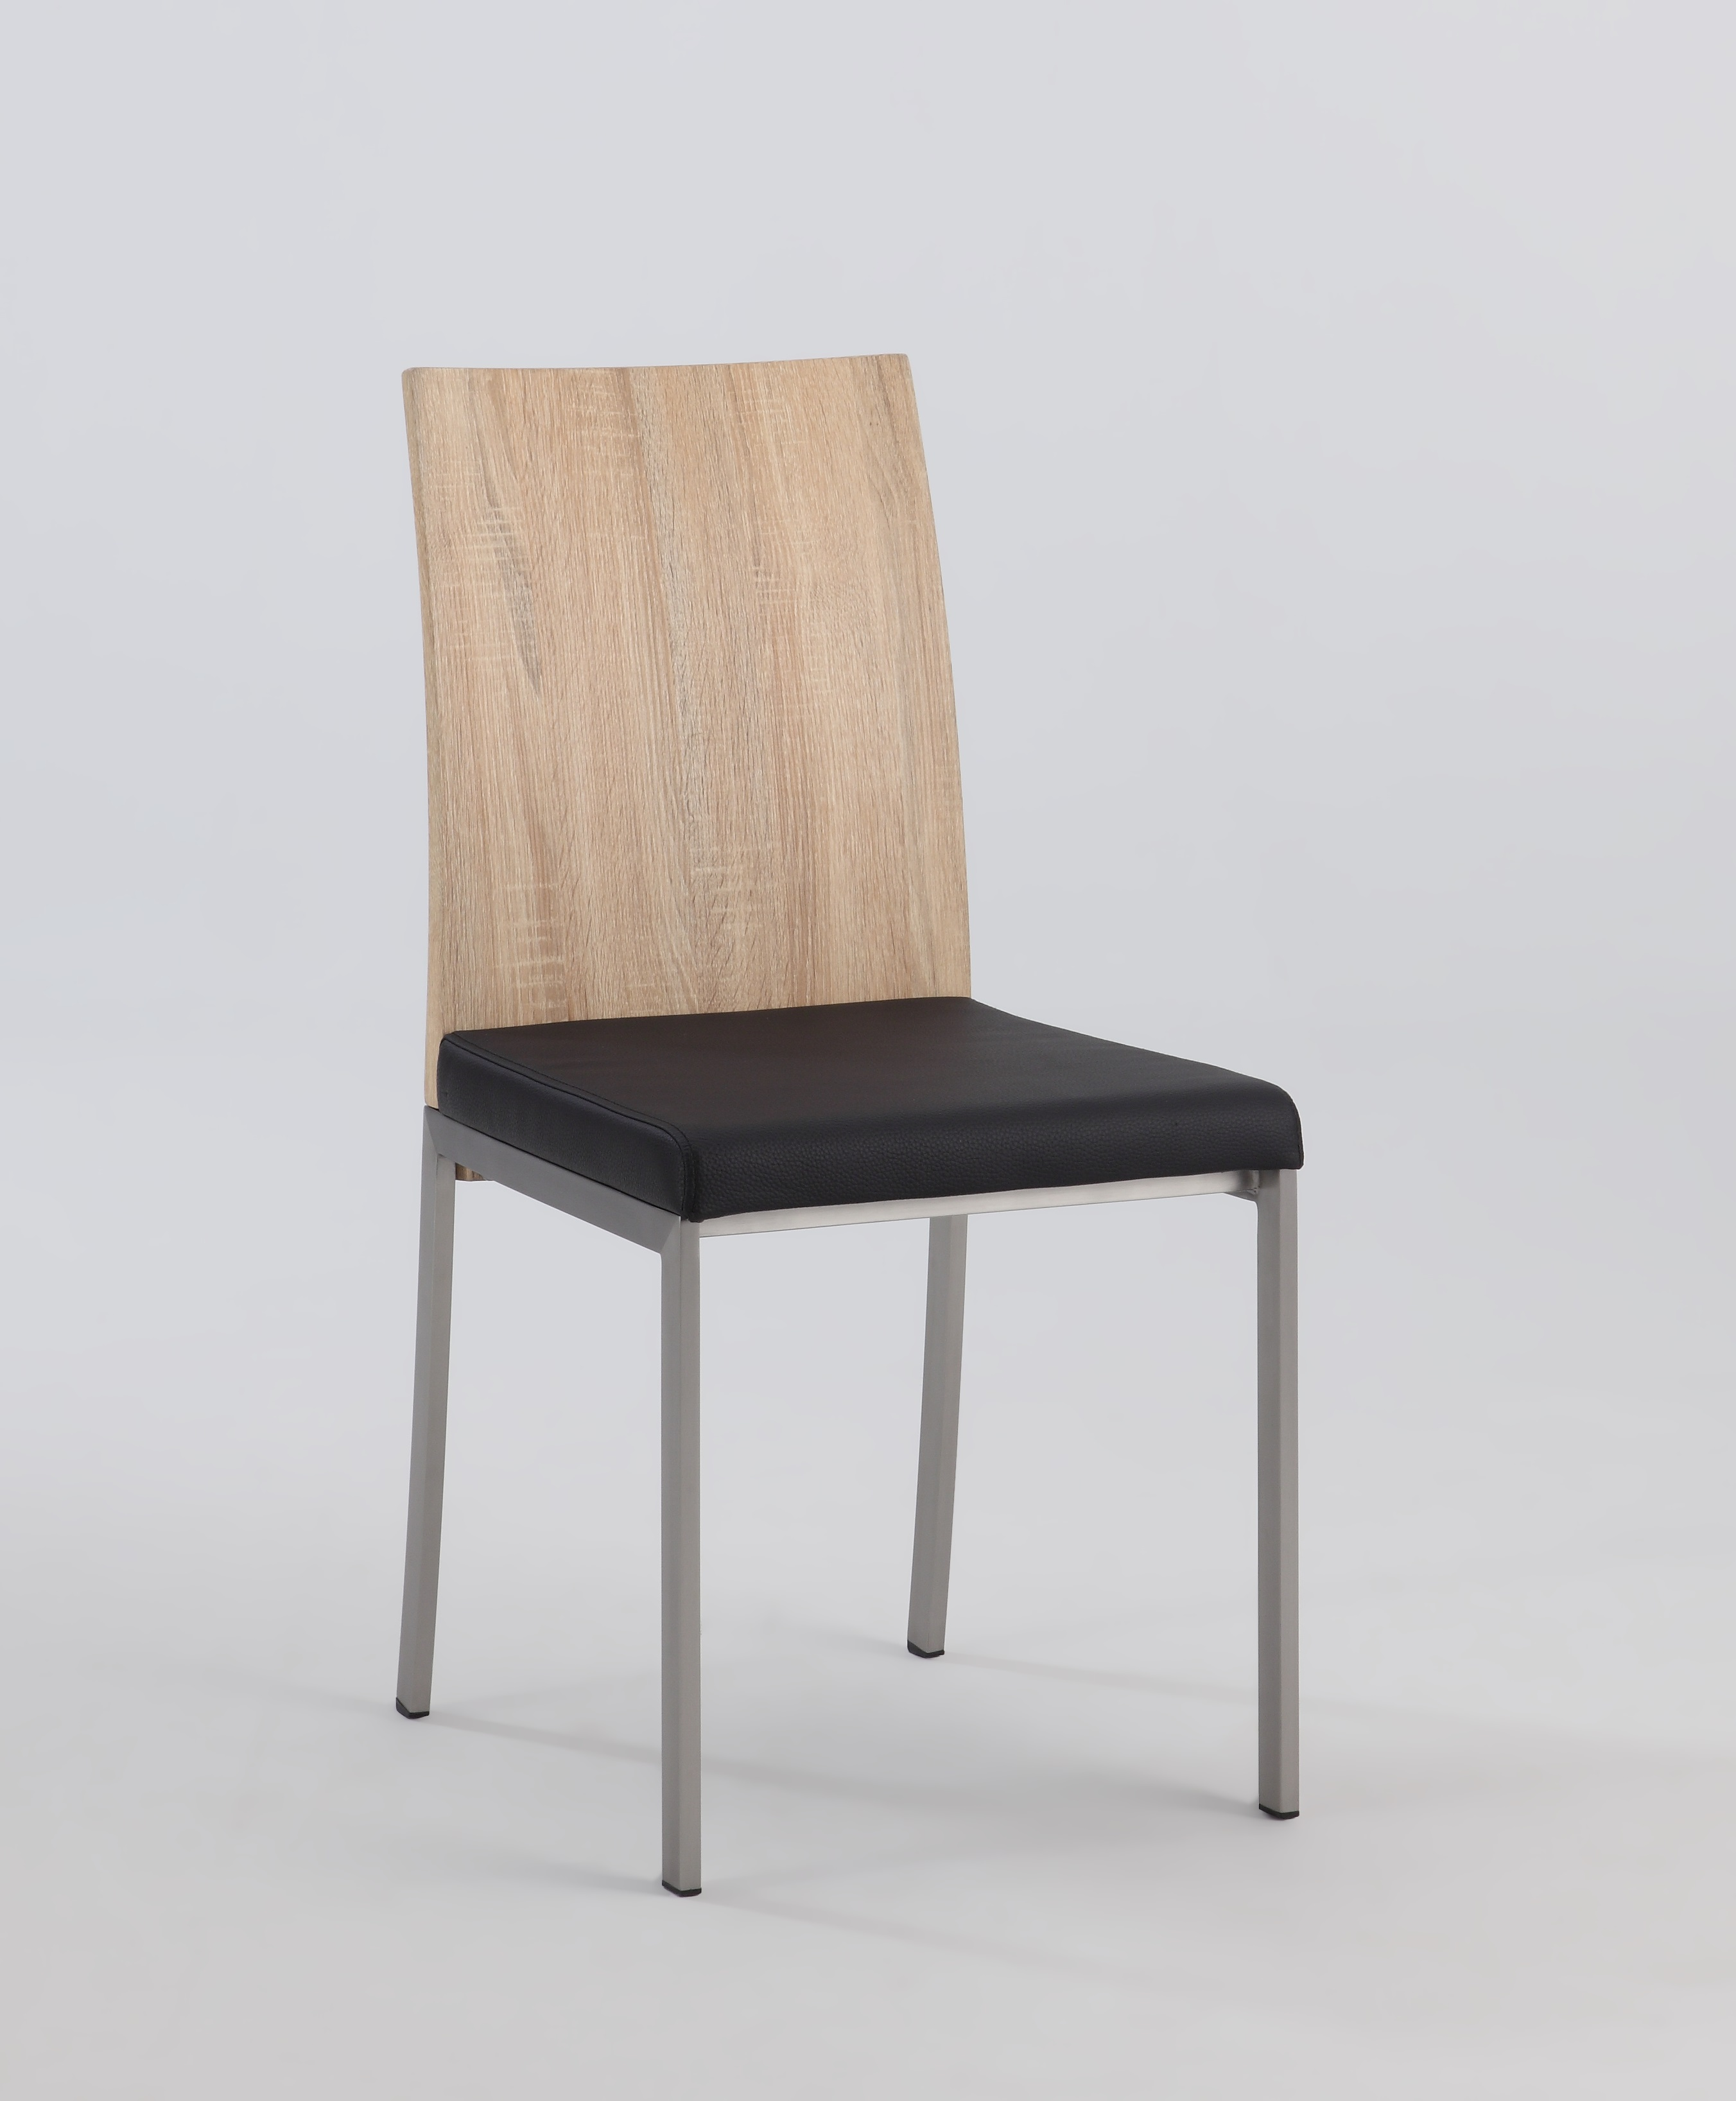 chair with light cover rental austin tx oak panel back side black upholstered